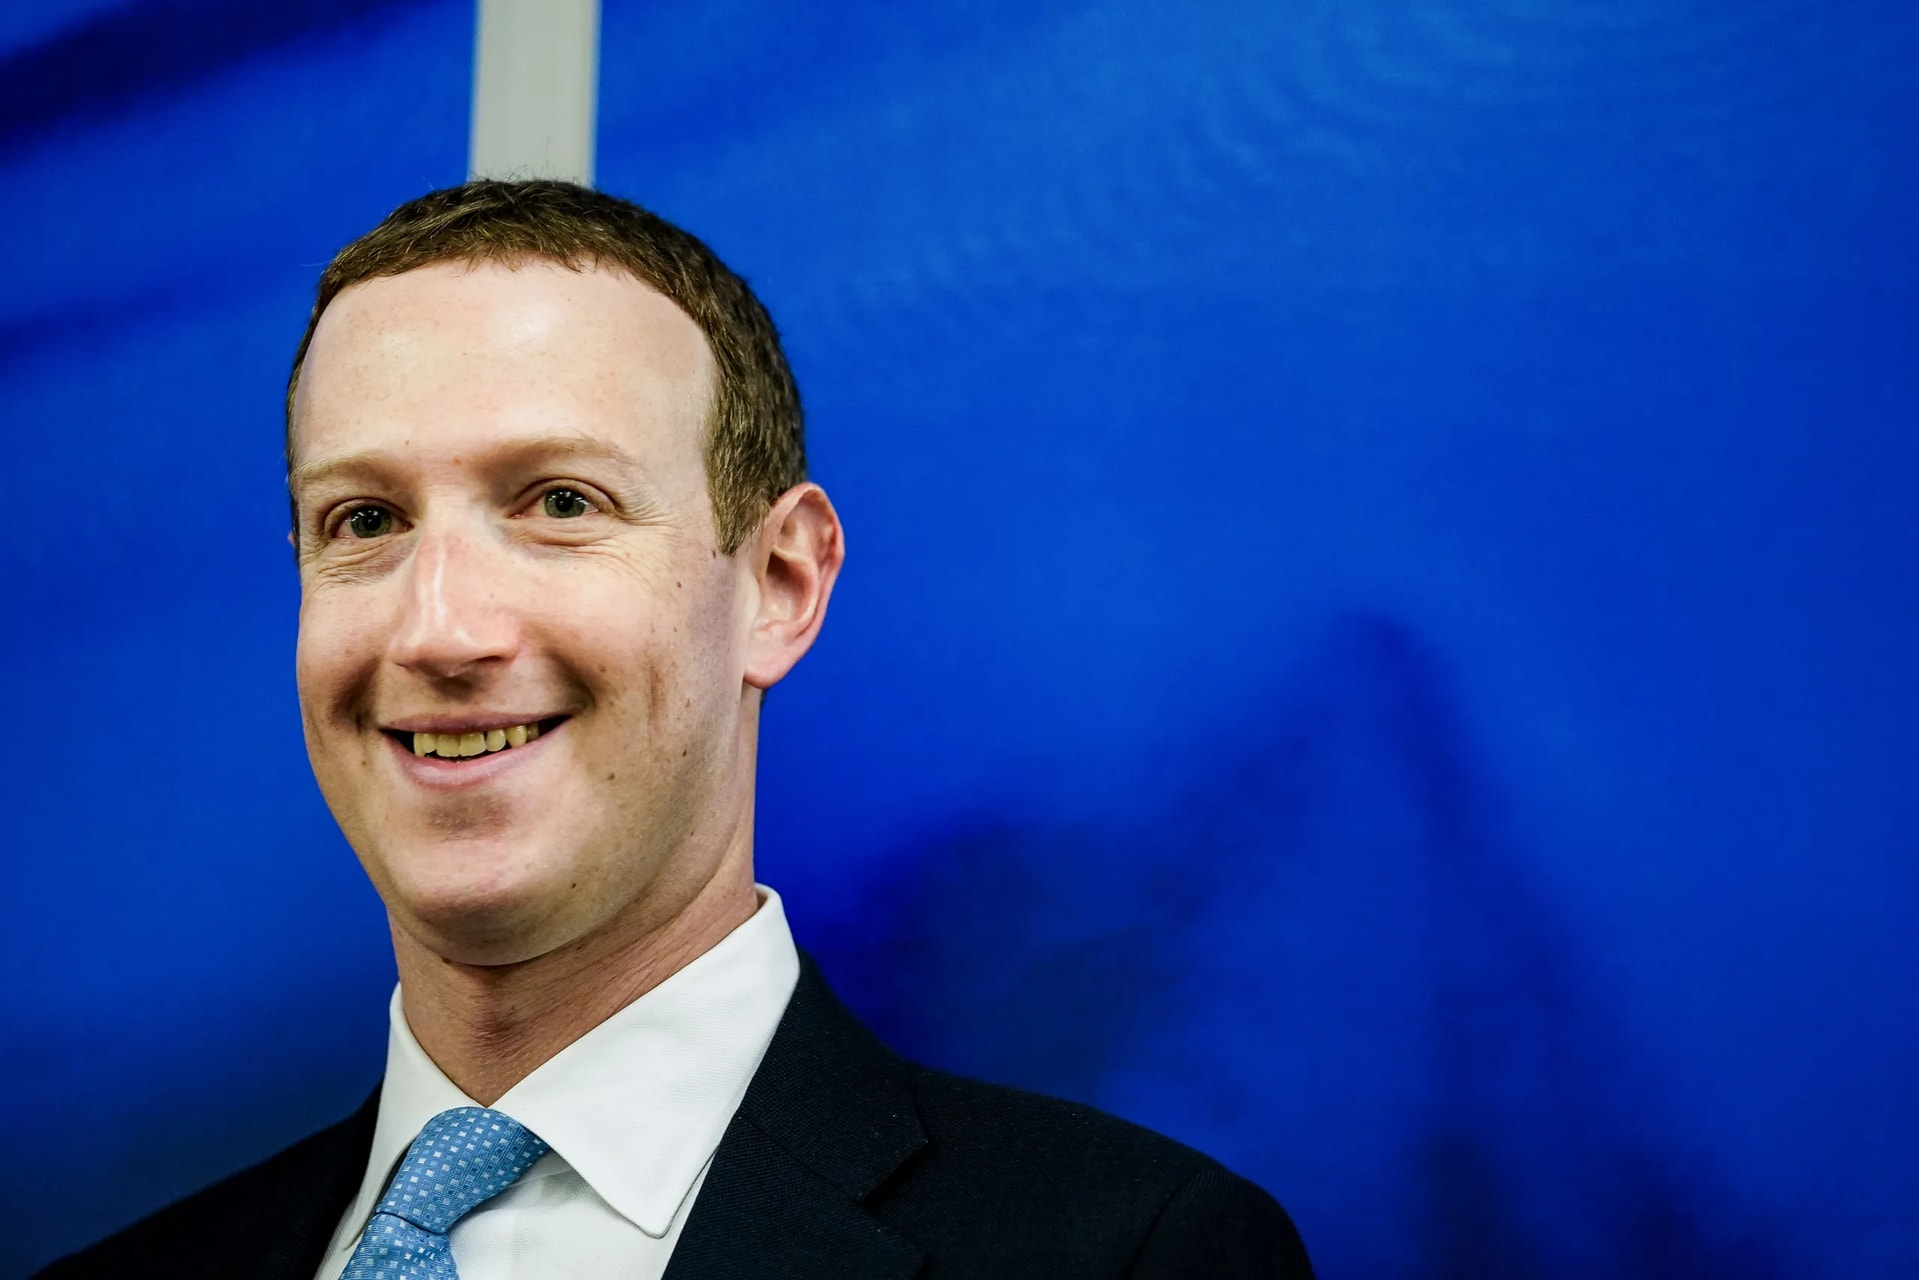 Why did Mark Zuckerberg drop out of Harvard?